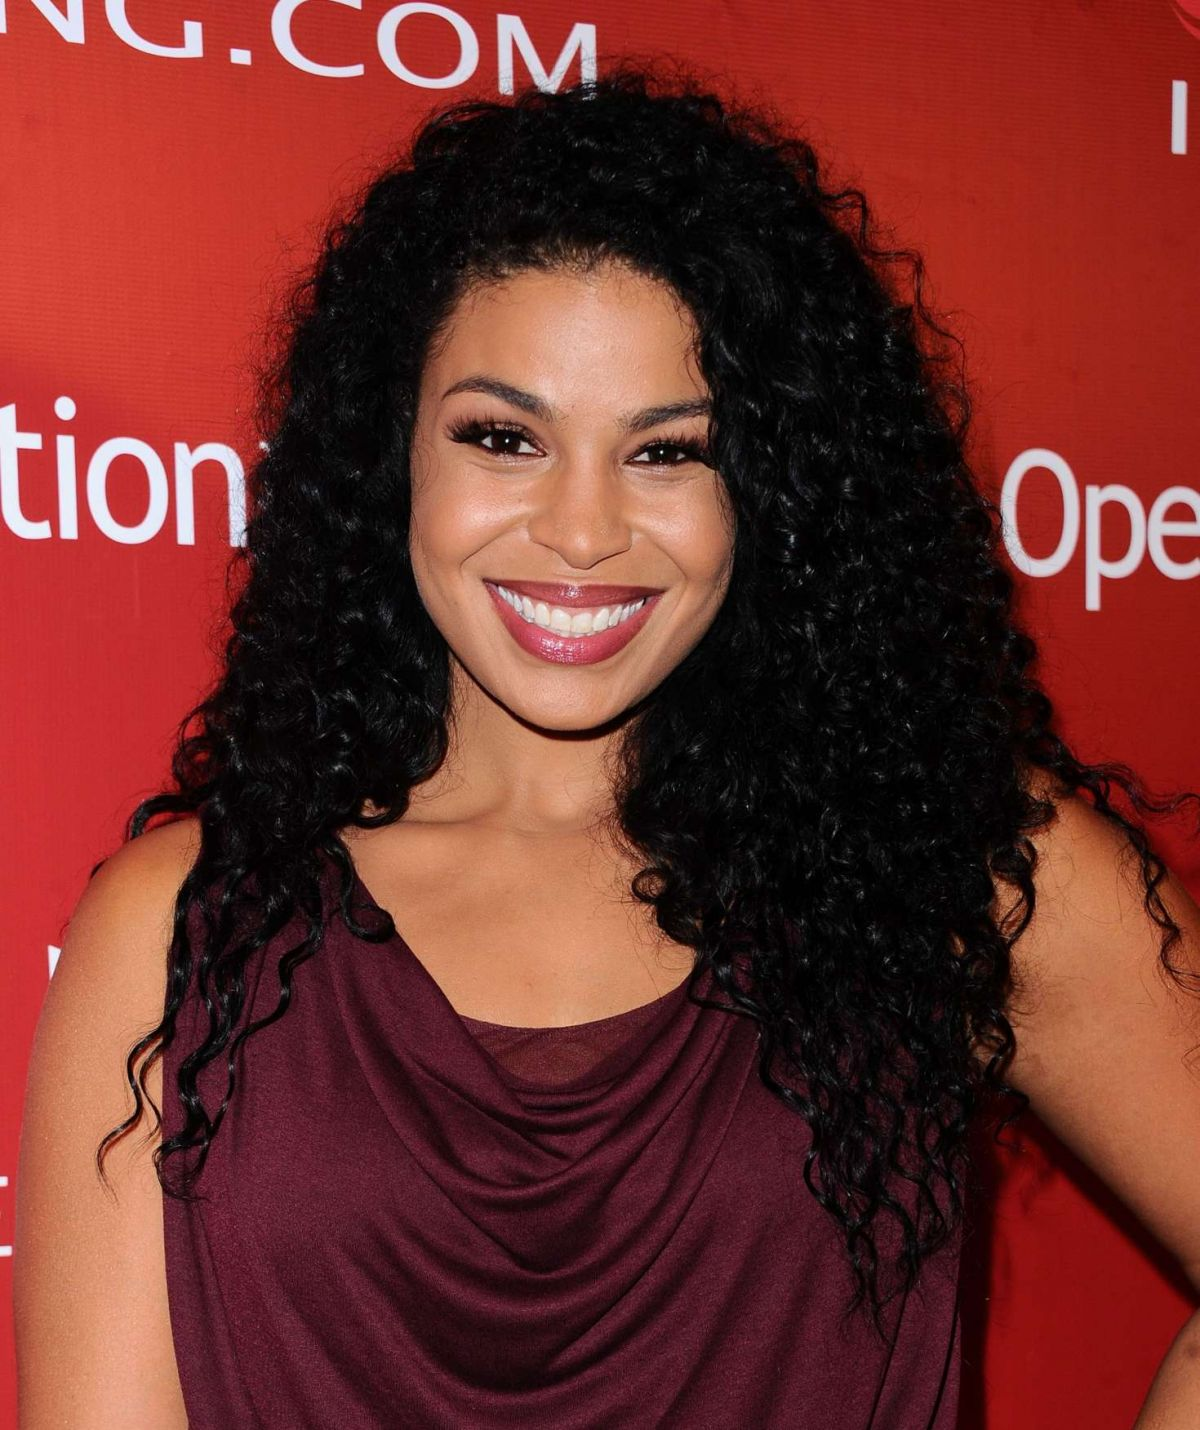 JORDIN SPARKS at Operation Smile Gala in Beverly Hills 09/30/2016 ...